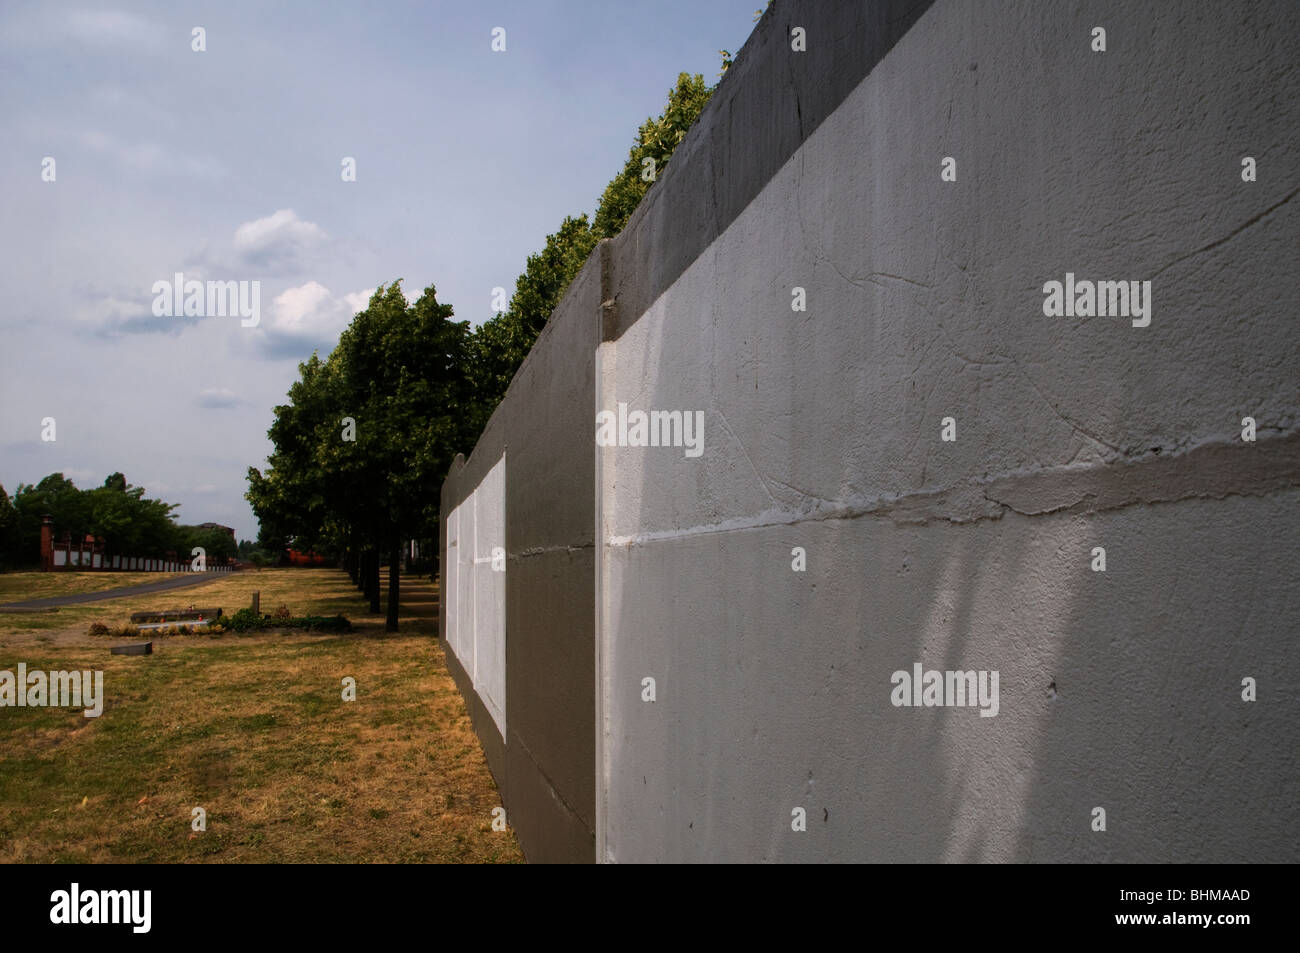 Remains of the wall that divided East and West of the city in Invaliden friedhof cemetery, Tiergarten quarter. Berlin, - Stock Image